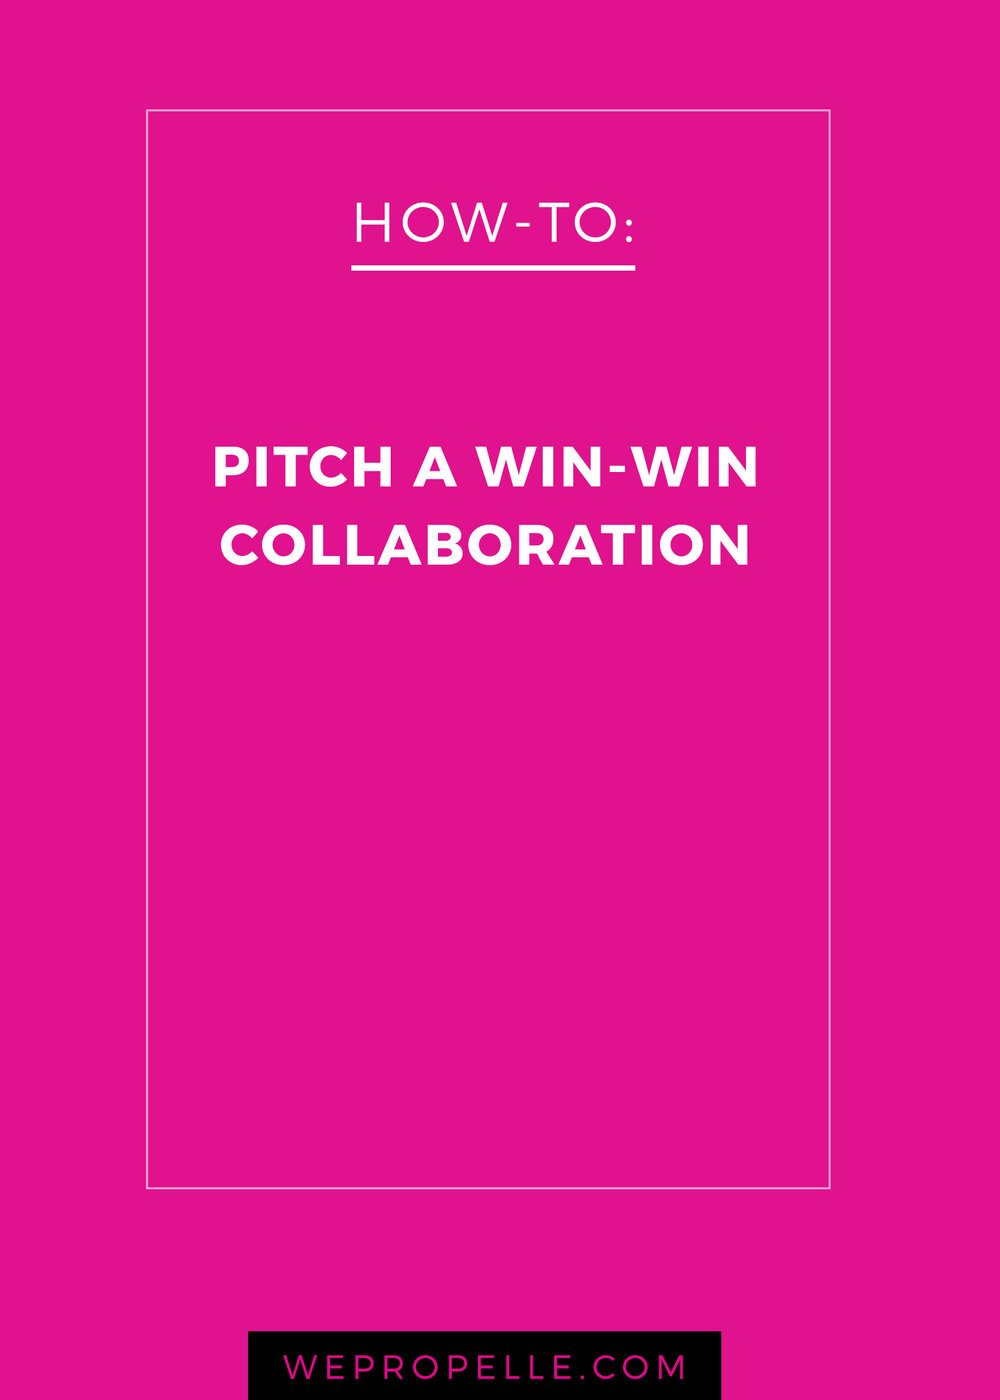 Three simple steps for pitching a win-win collaboration. | wepropelle.com